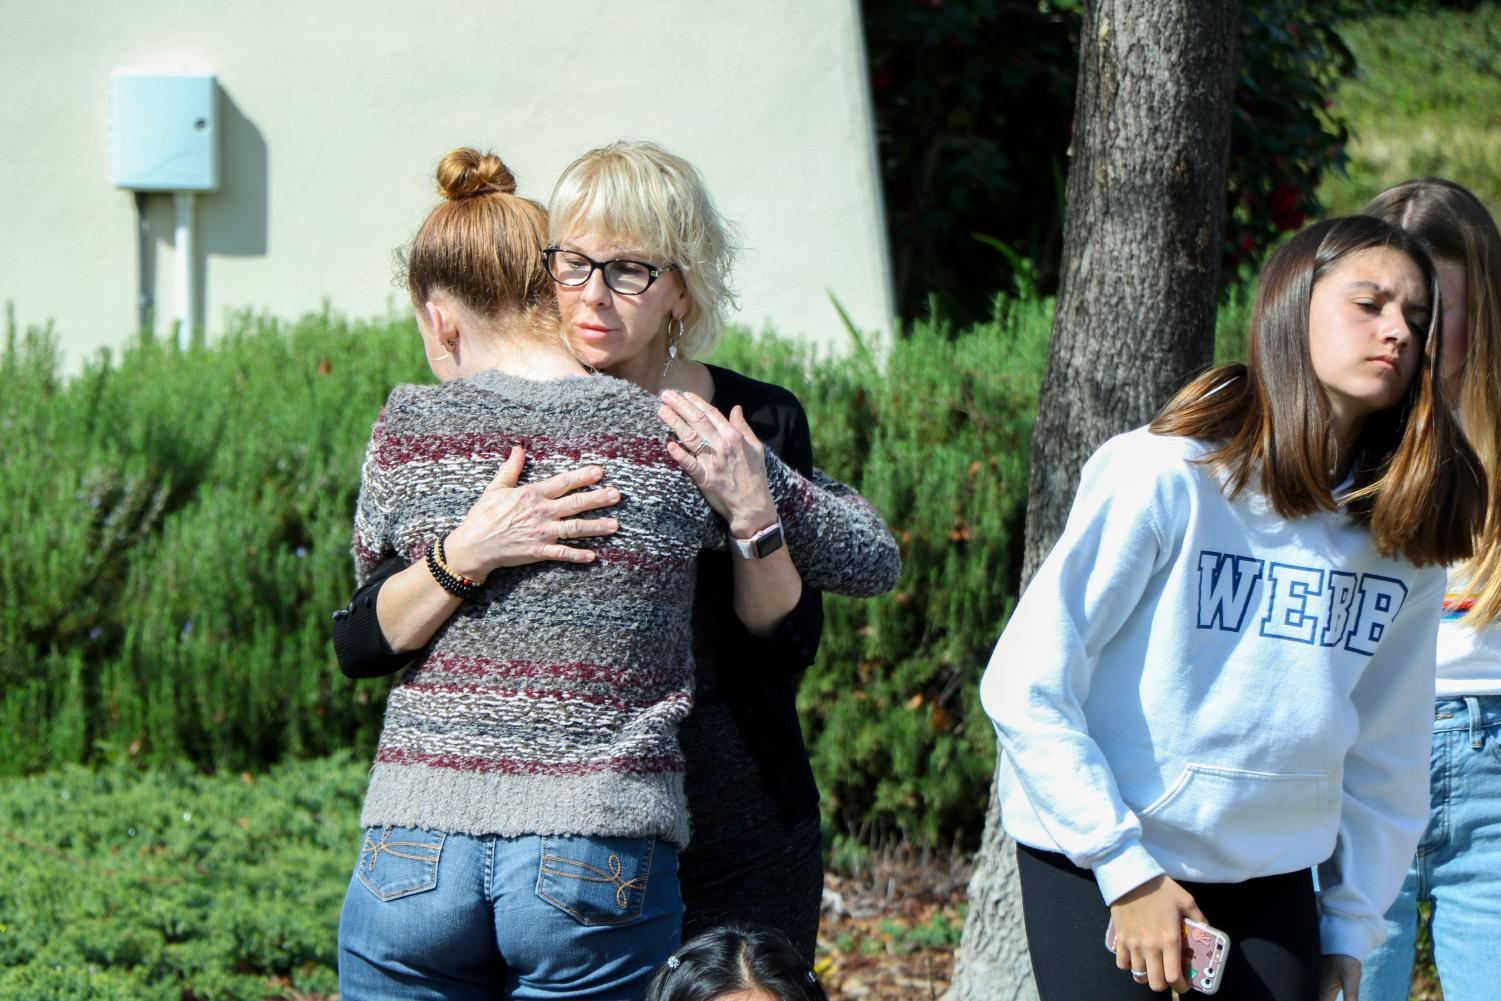 Georgia Newman ('18) embraced by dean's assistant, Mary Tarushka, after 17 minutes of silence on March 17, 2018, one month after the Parkland shooting.